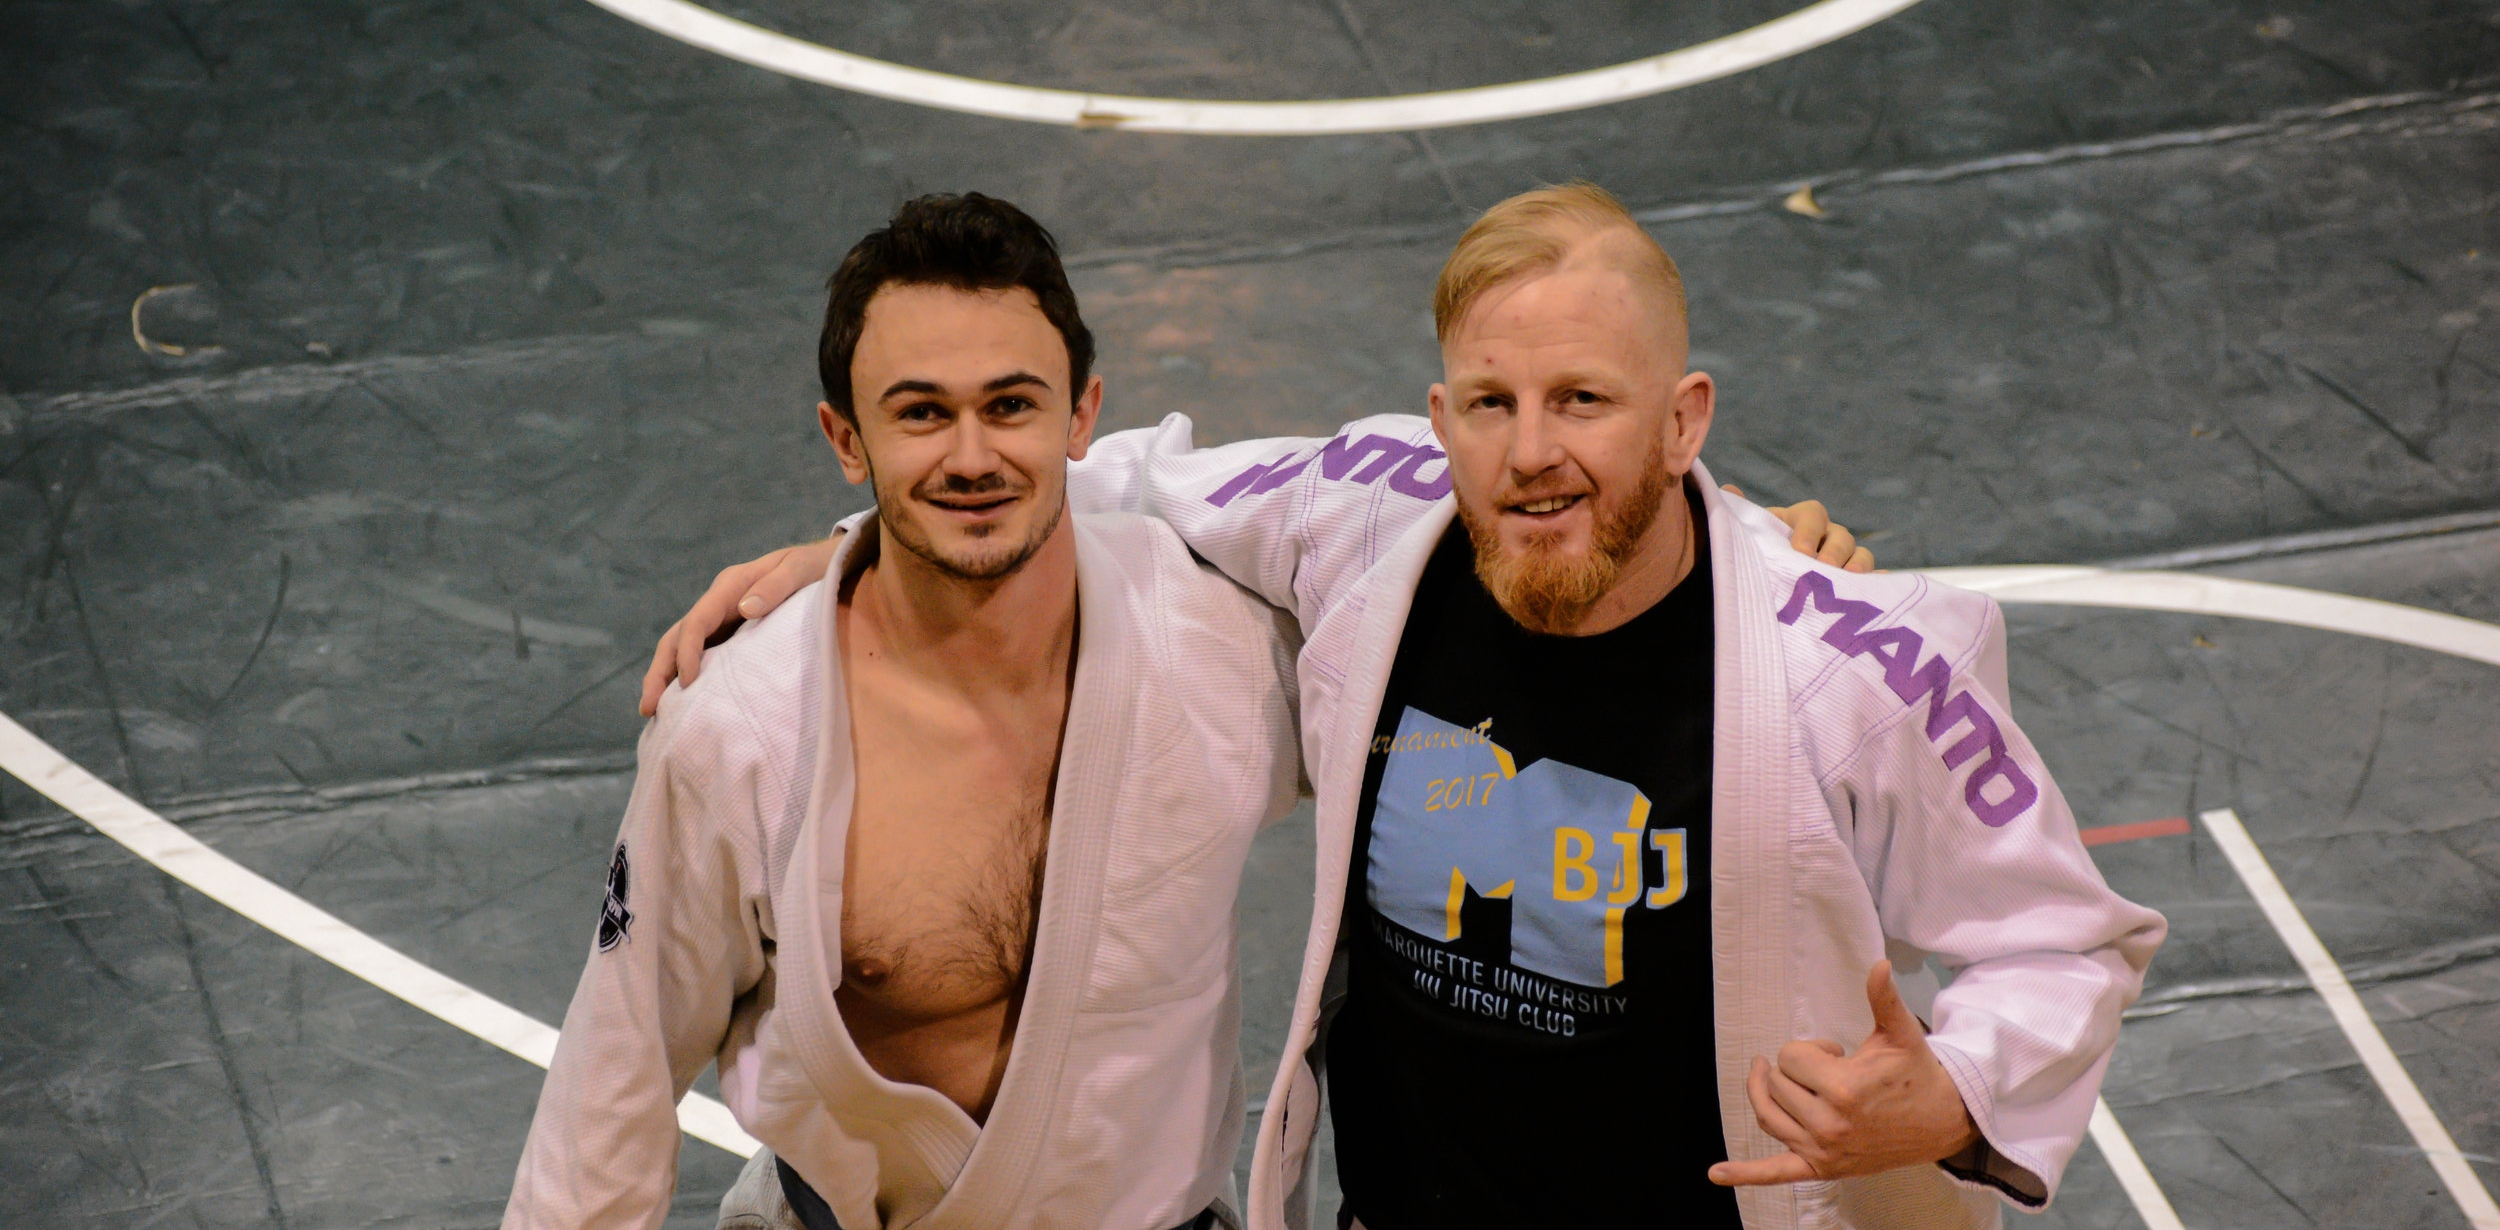 Jiu Jitsu club Founder Aidan Flanagan and Marquette Head Coach Chris Martin of Nova Gyms Martial Arts & Fitness.